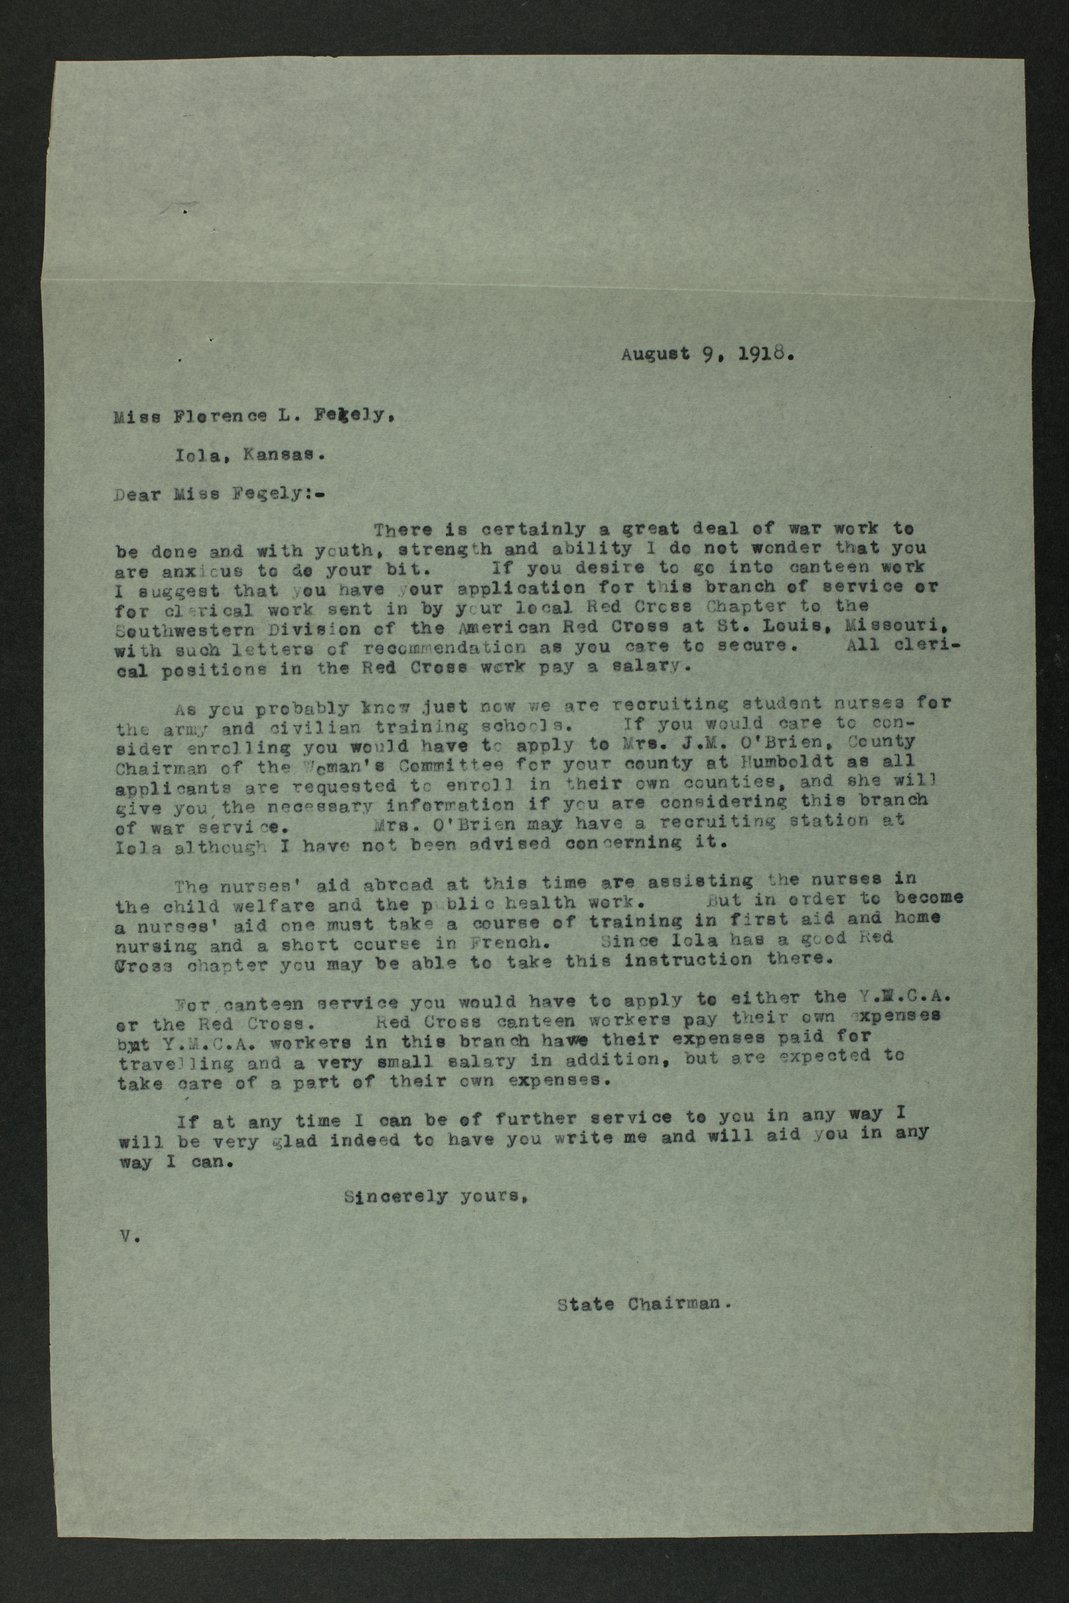 Council of National Defense Woman's Committee correspondence - 6